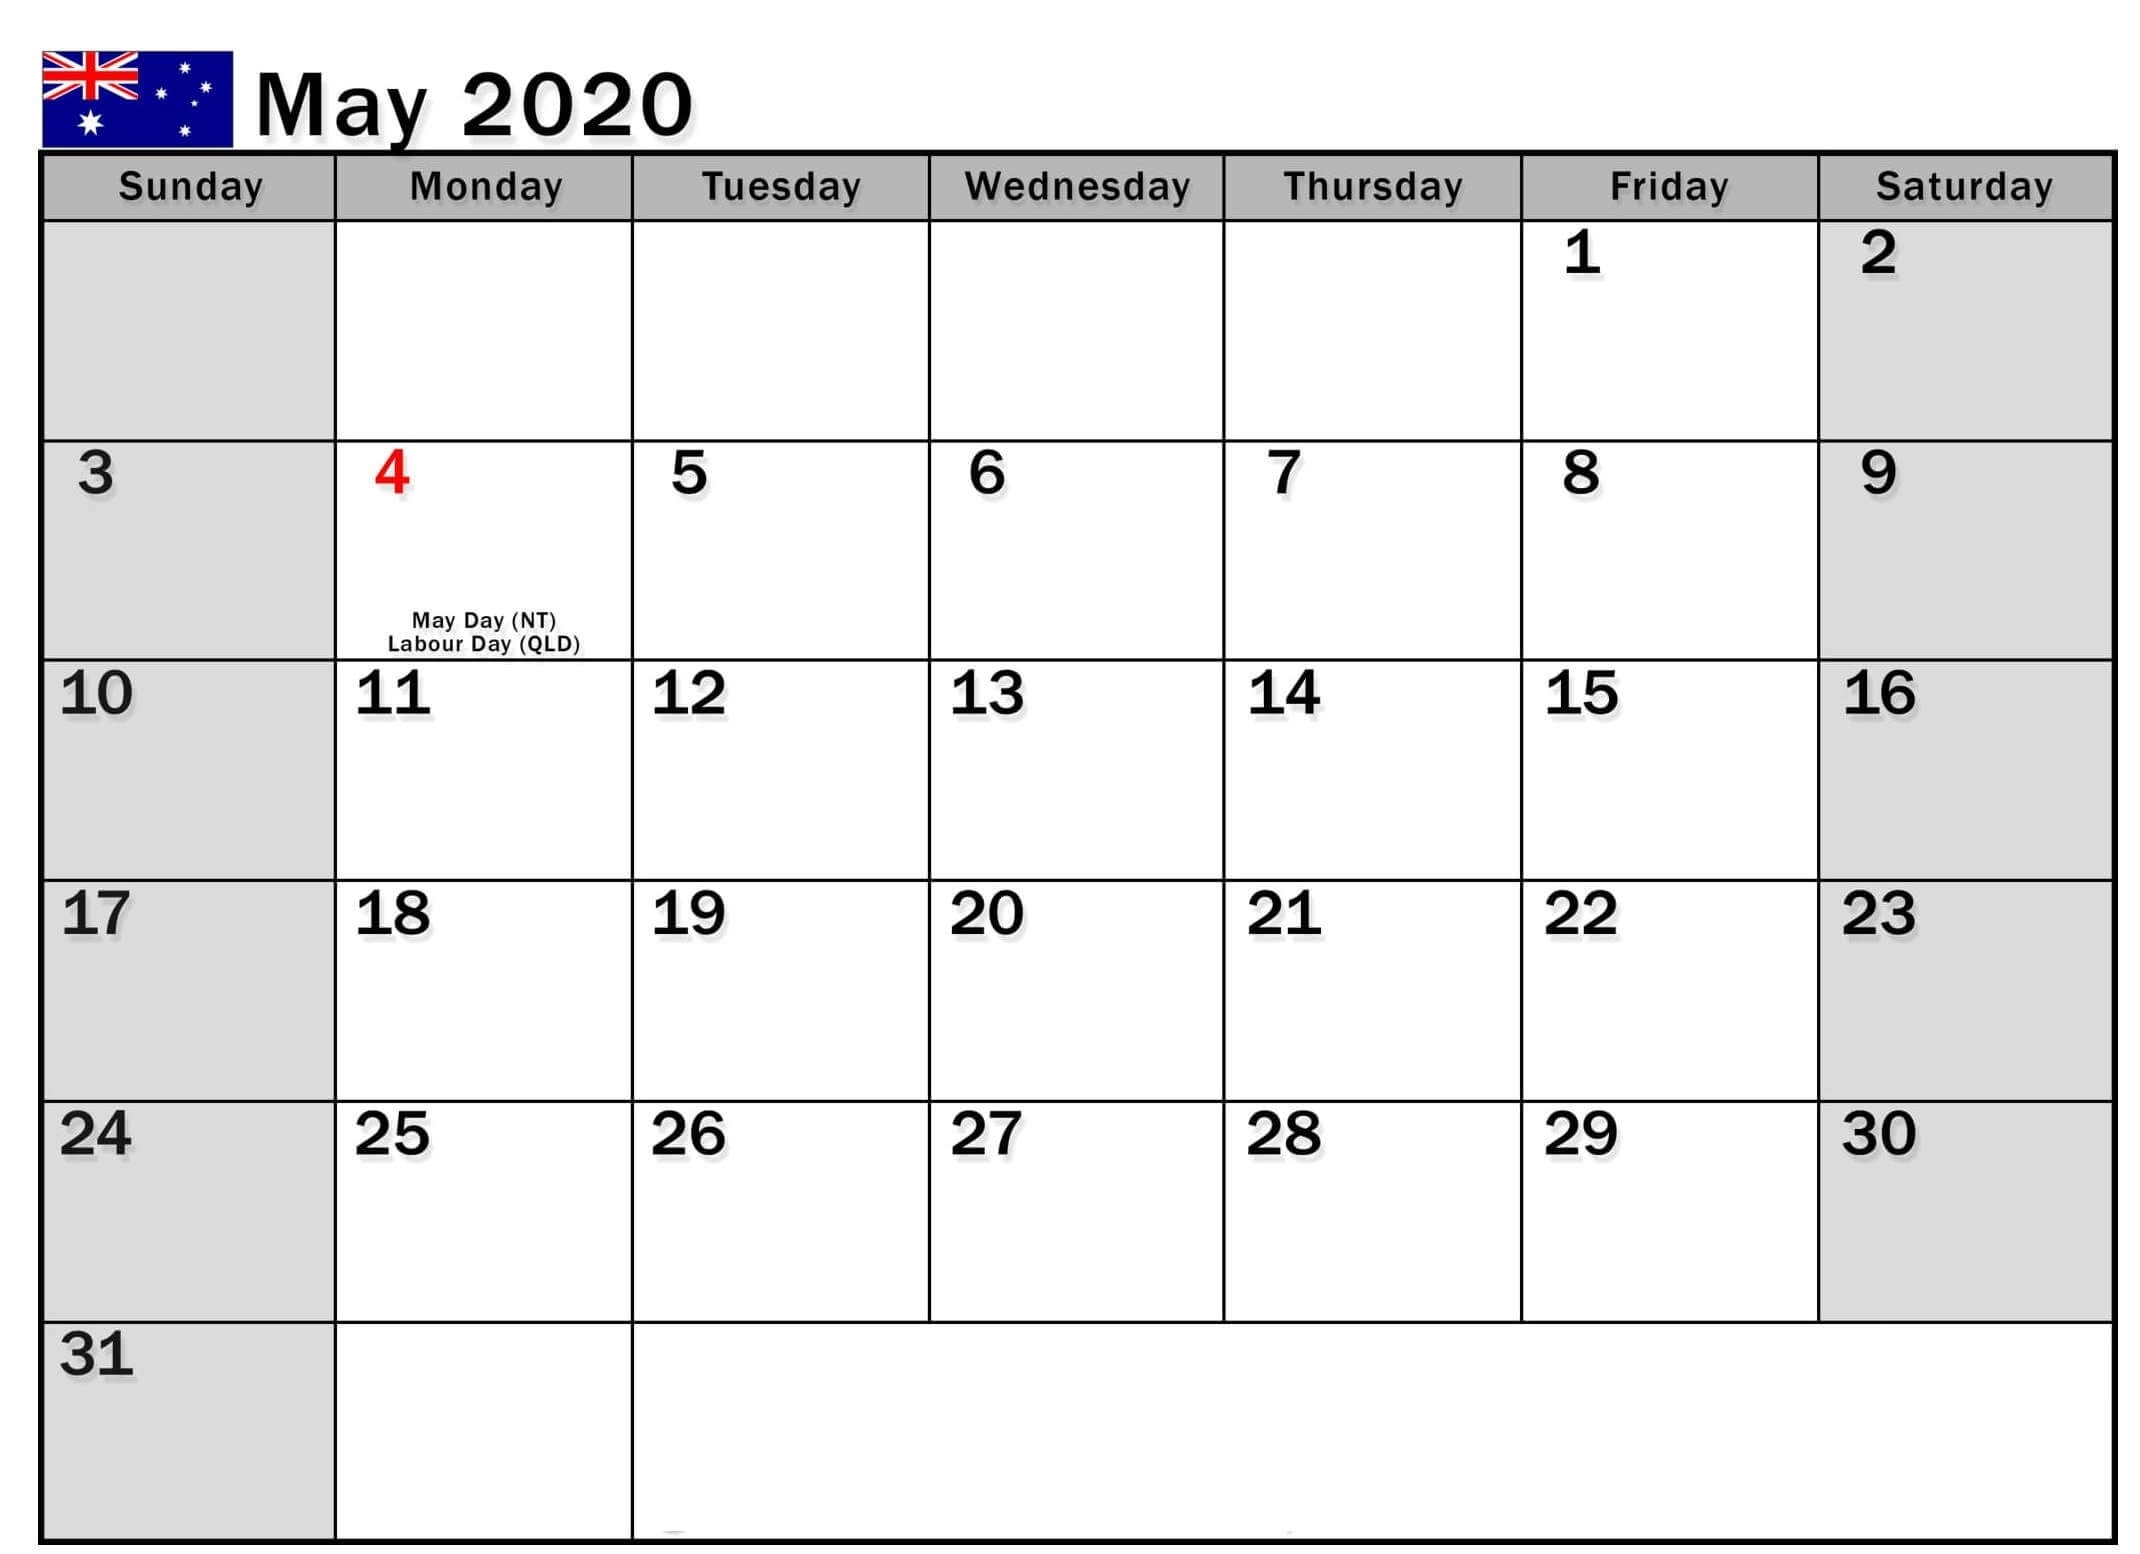 May 2020 Calendar Australia With Holidays | Free Printable